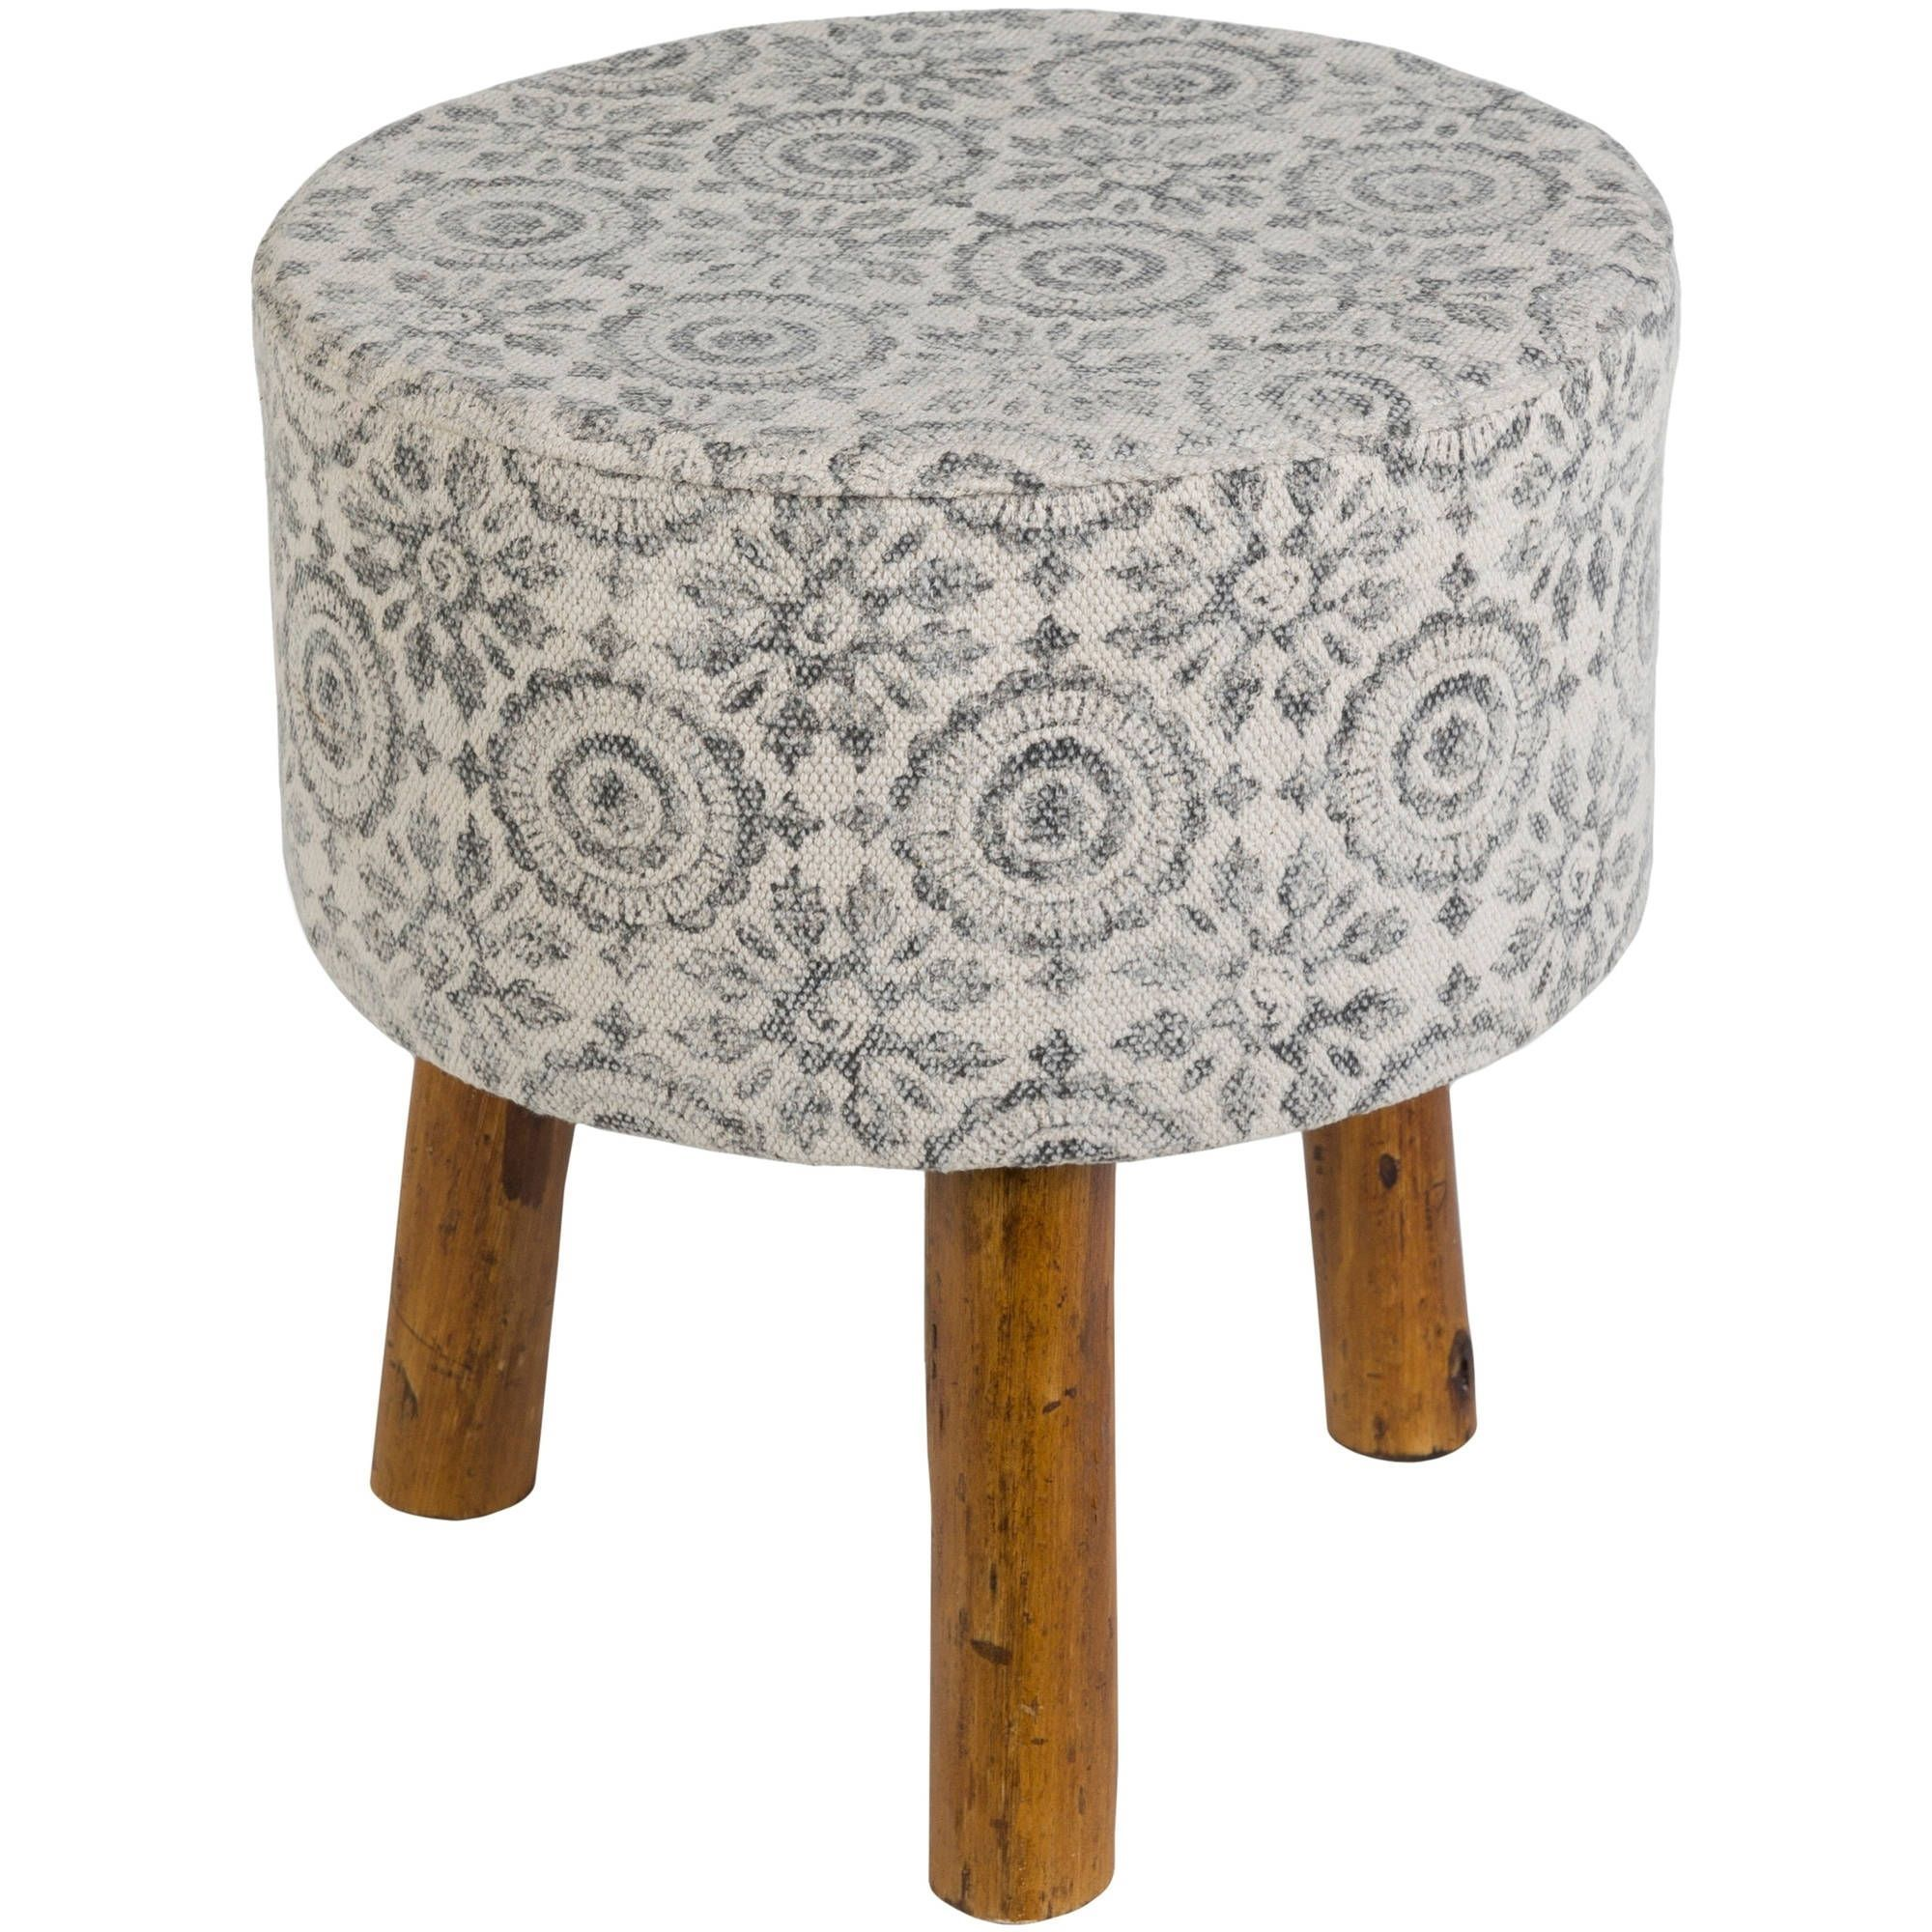 Fine Charcoal Boho Wooden Stool Gray Cotton Products Ocoug Best Dining Table And Chair Ideas Images Ocougorg